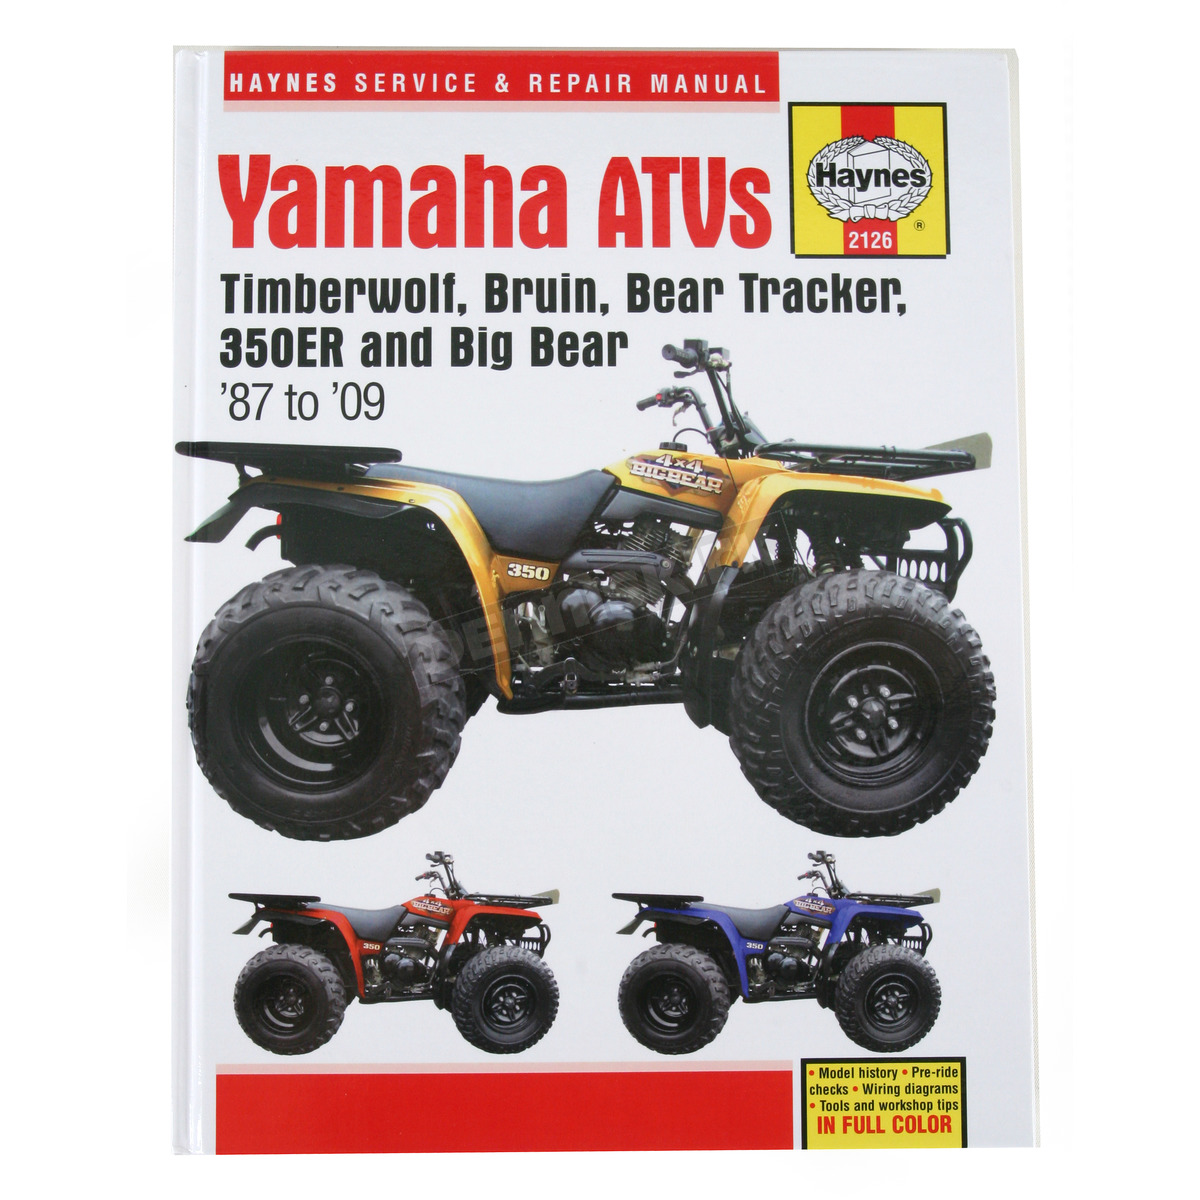 Haynes Yamaha Repair Manual - 2126